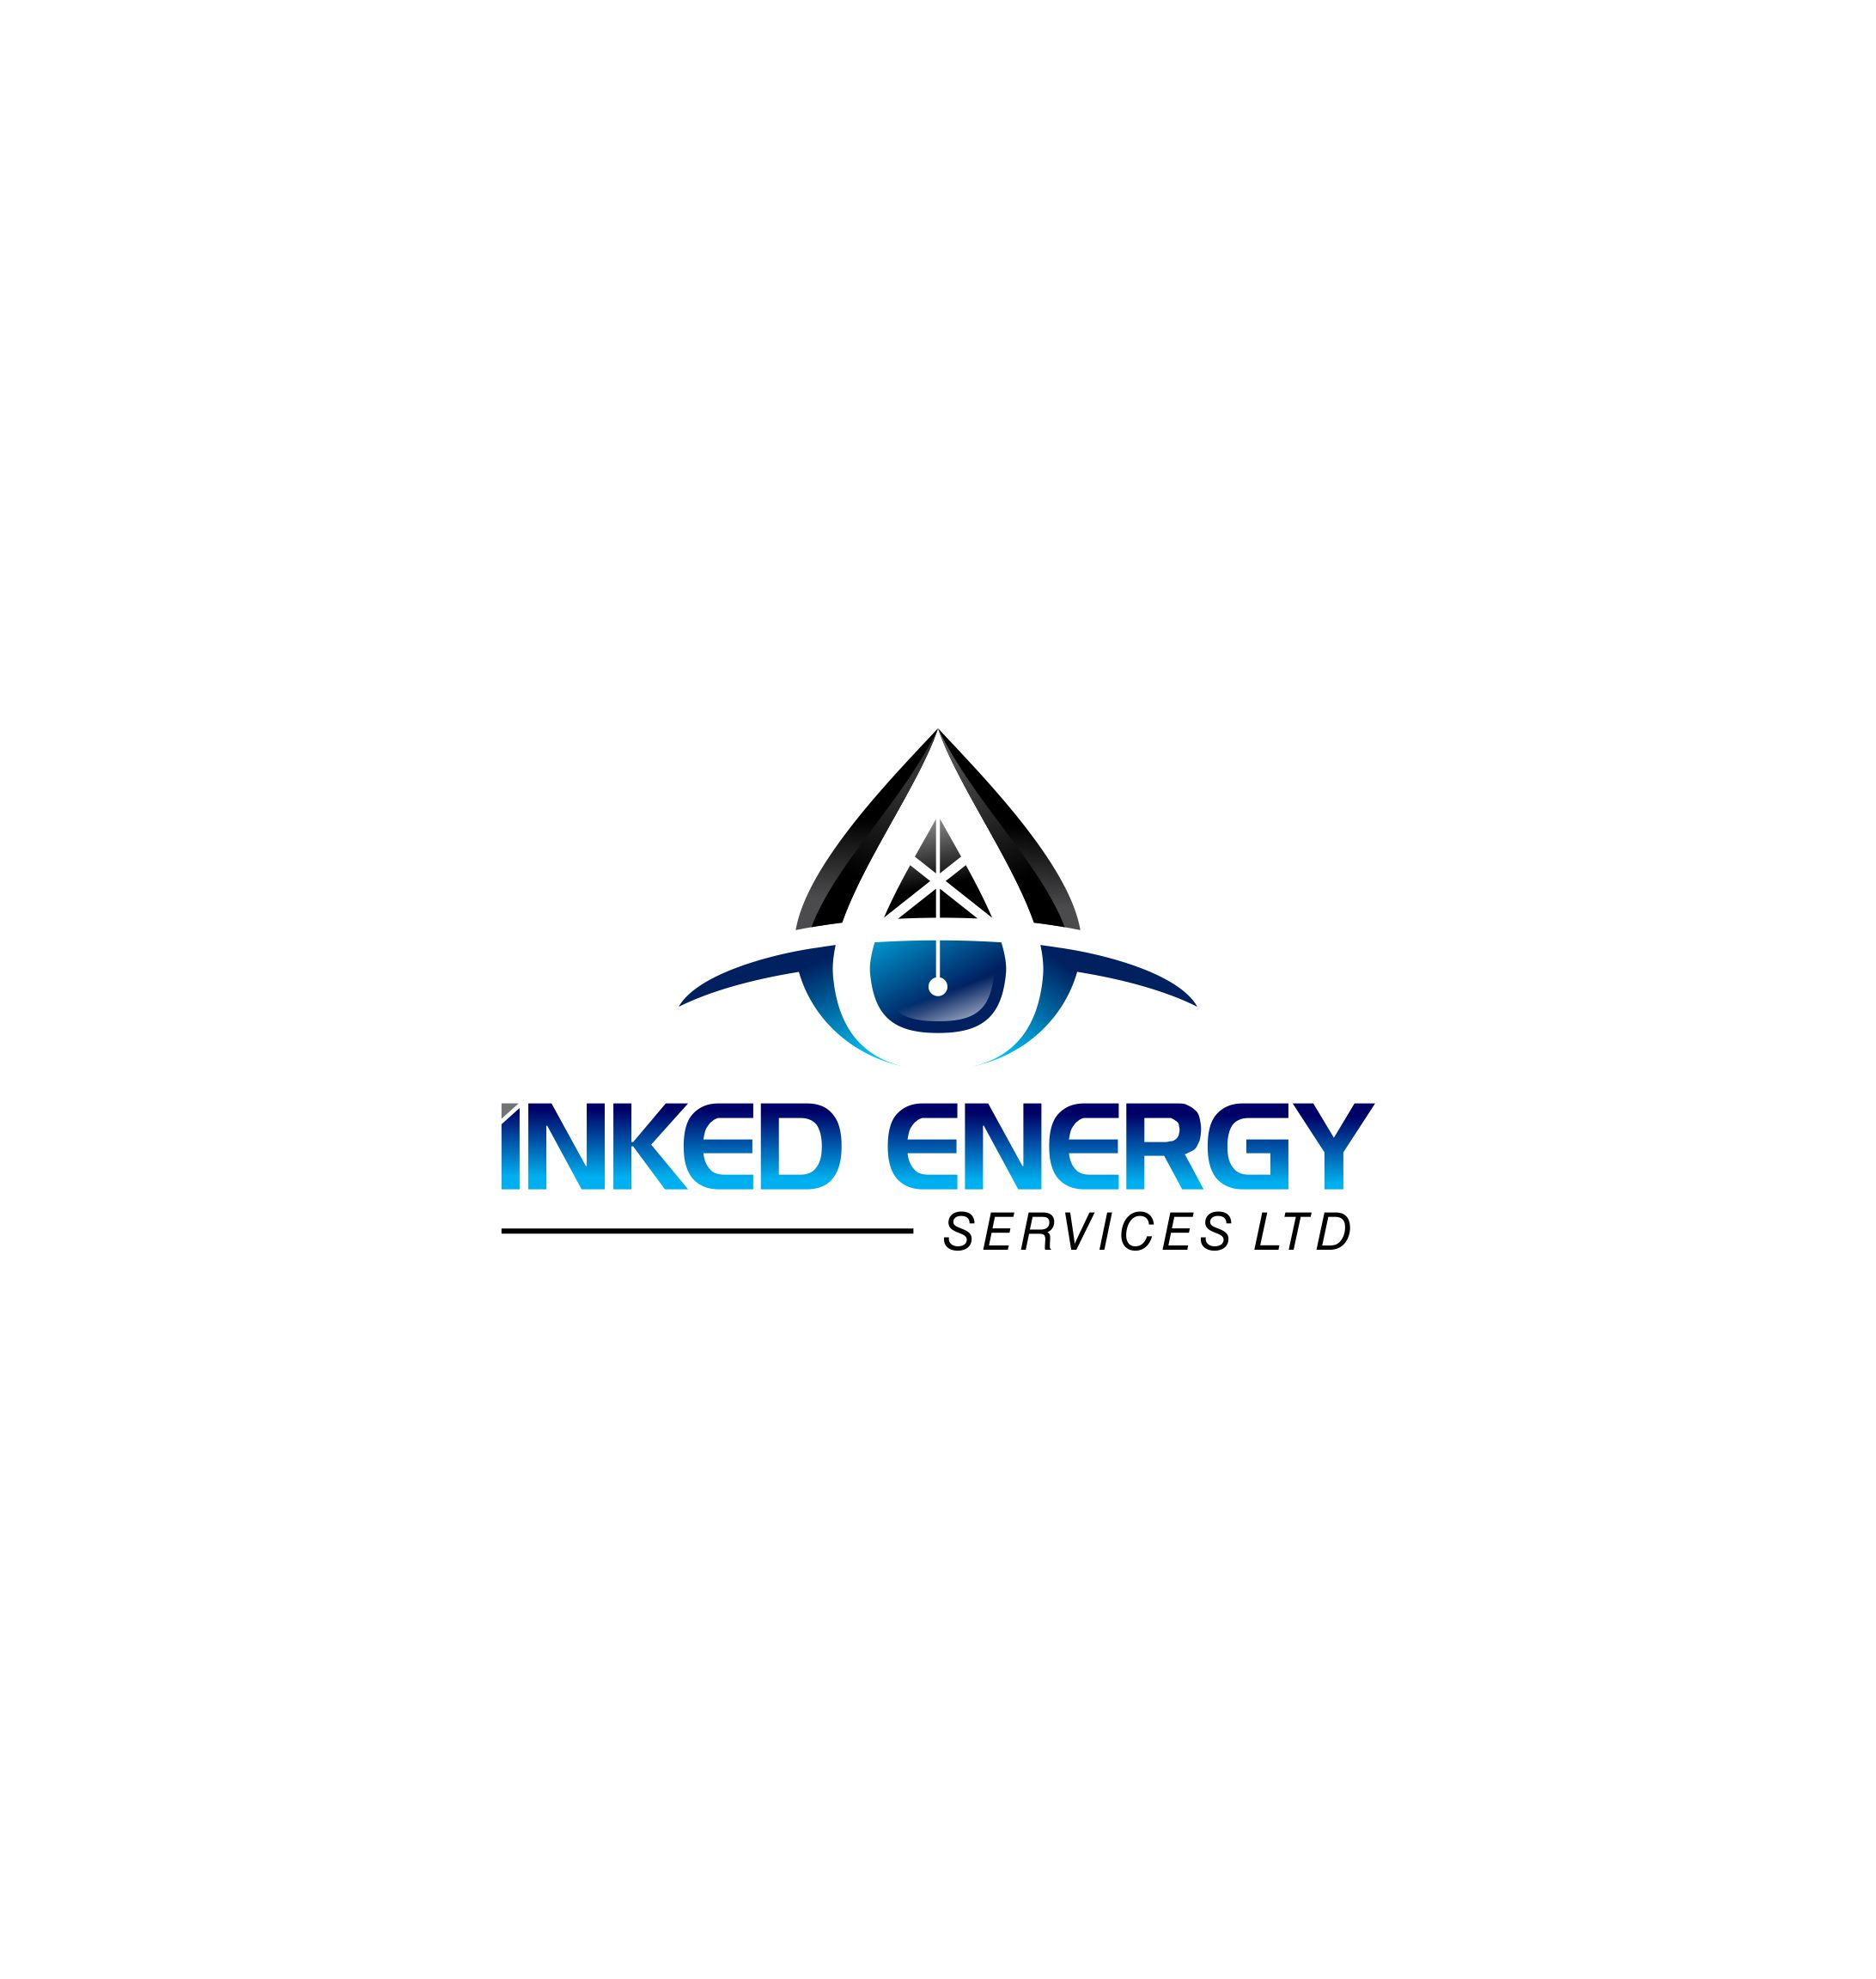 Logo Design by Raymond Garcia - Entry No. 141 in the Logo Design Contest Creative Logo Design for INKED ENERGY SERVICES LTD.